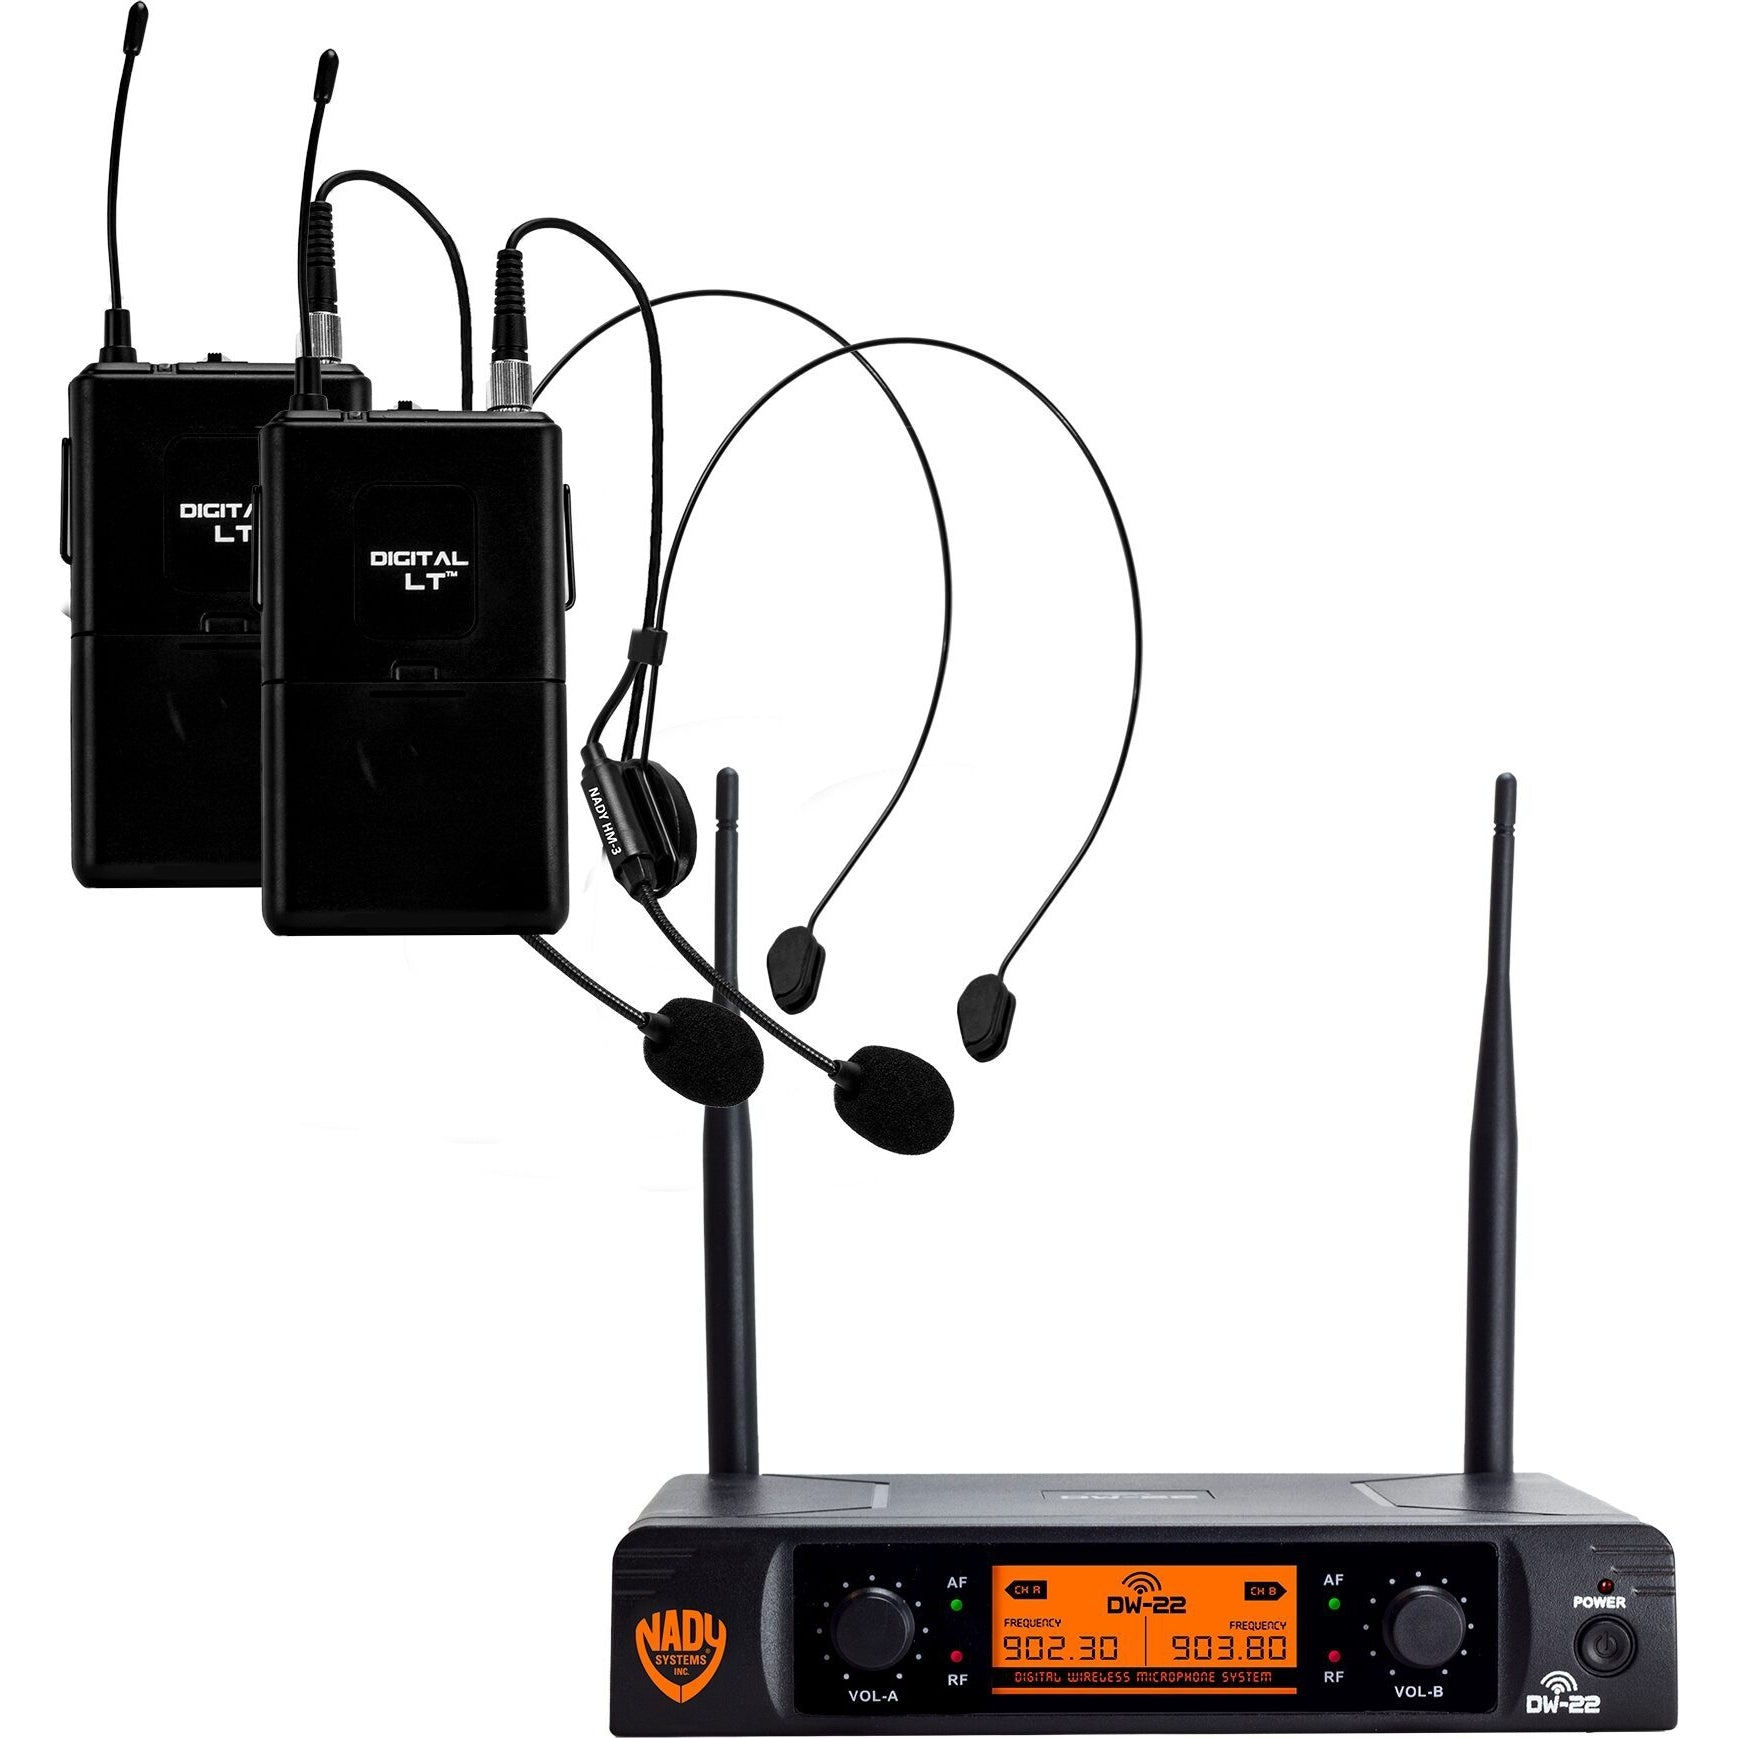 Nady DW-22 Dual Transmitter Digital Wireless Headset Microphone System, Channel D15/D16